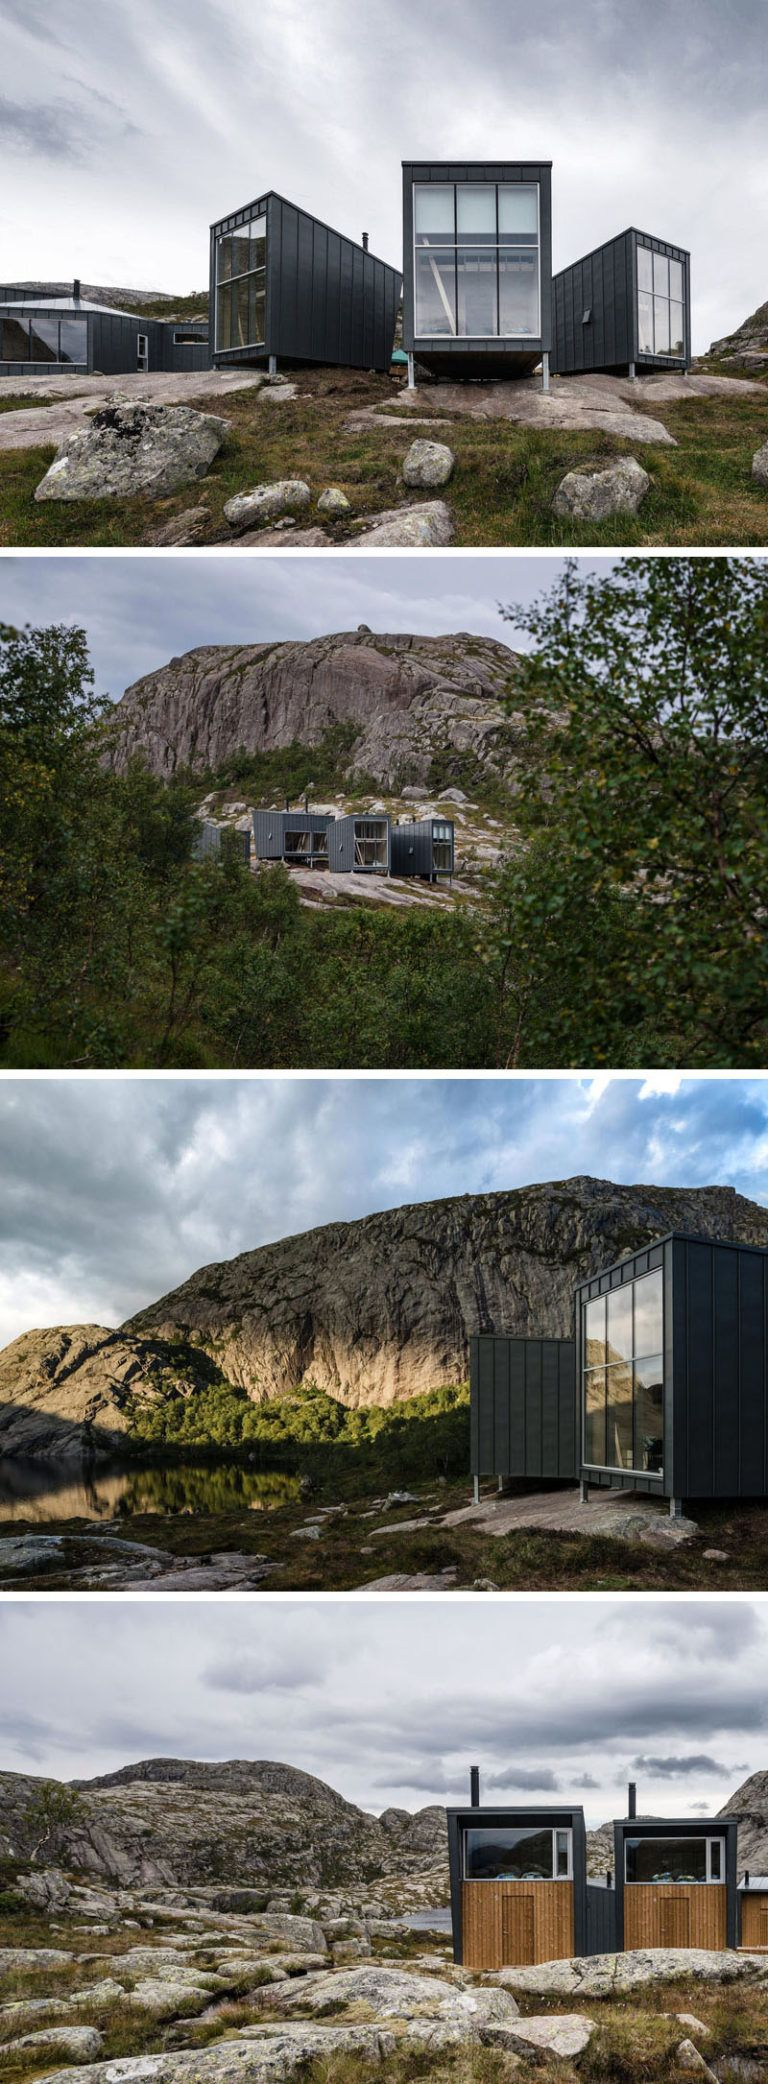 Via http://PrefabNsmallhomes.tumblr.com | Mountain lodges for hikers, Forsand, Norway by KOKO Architects